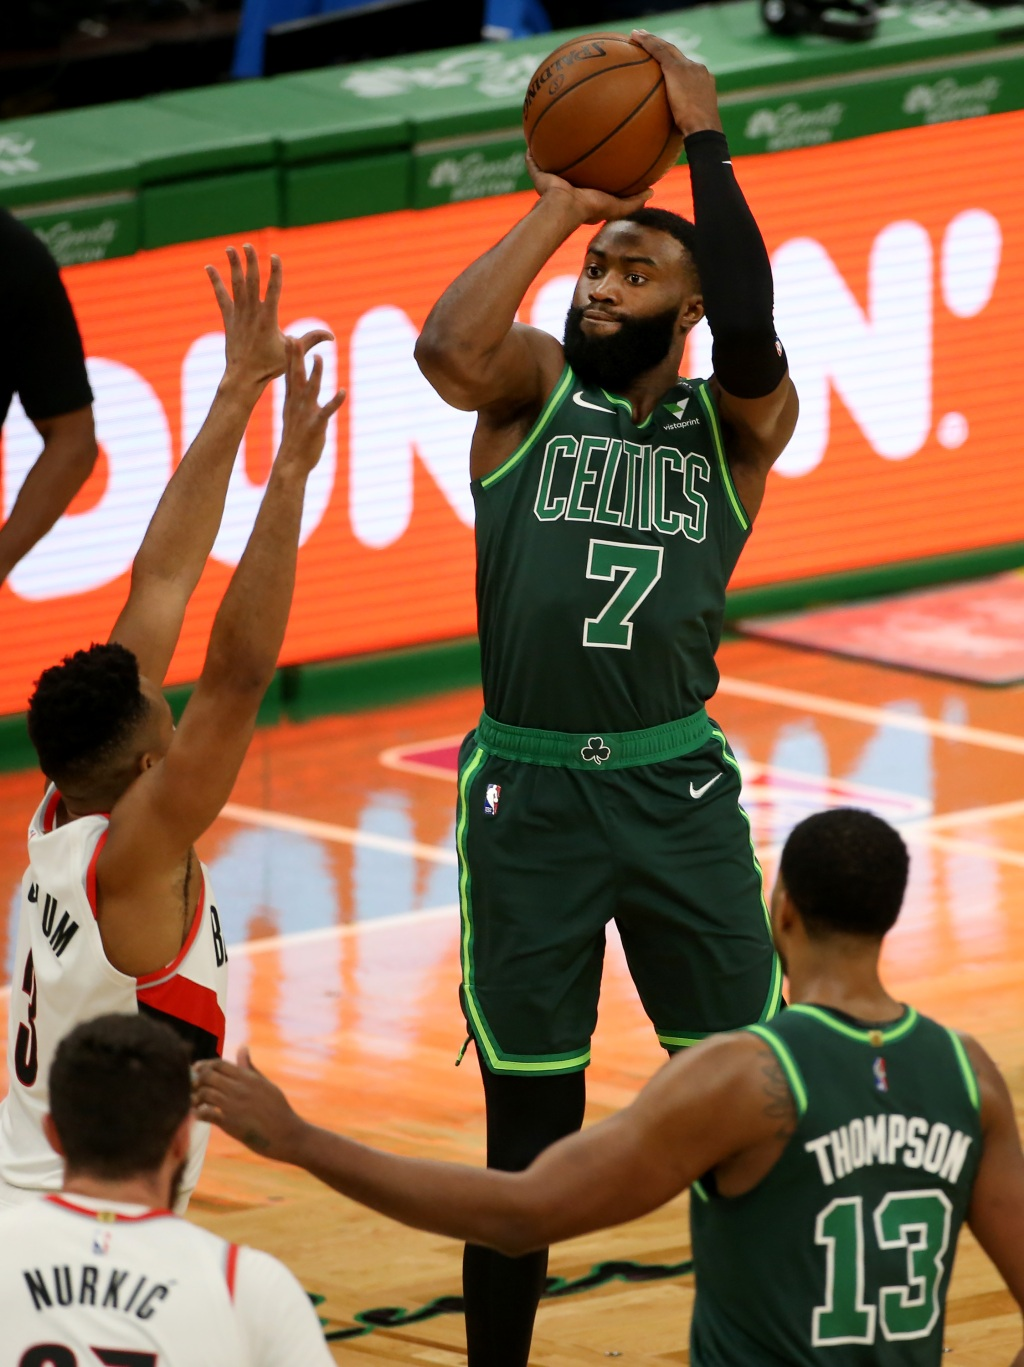 Celtics Notebook: Practice pace a sprint in early going